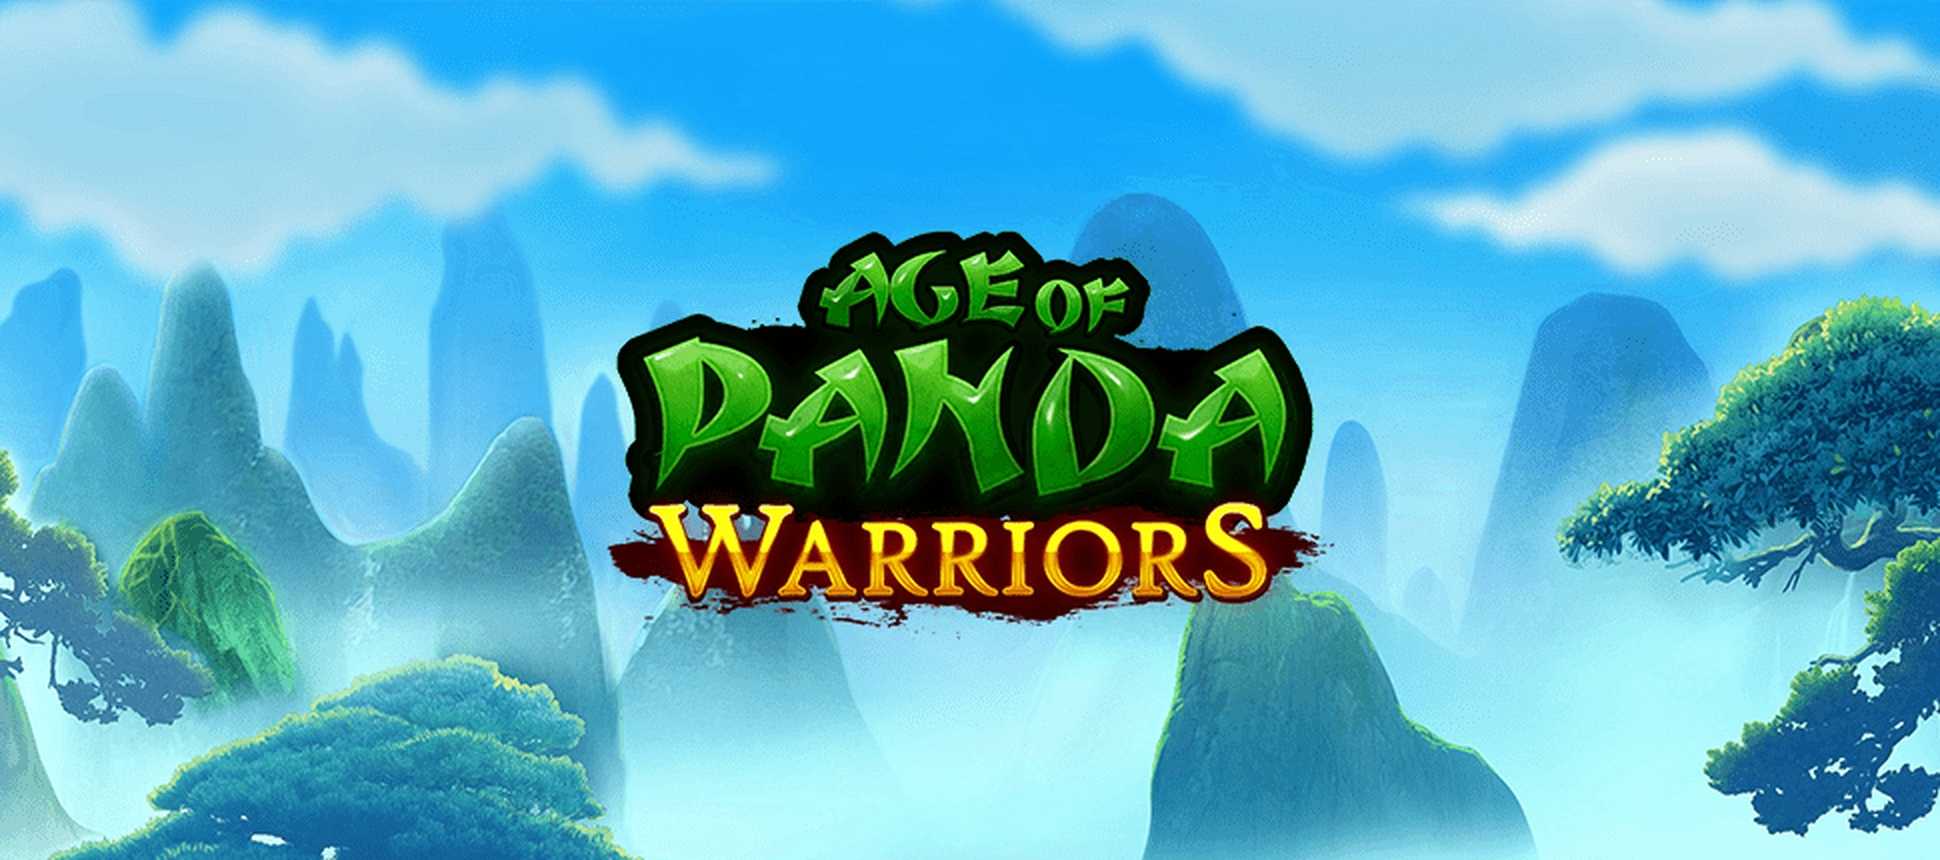 Reels in Age of Panda Warriors Slot Game by ReelFeel Gaming